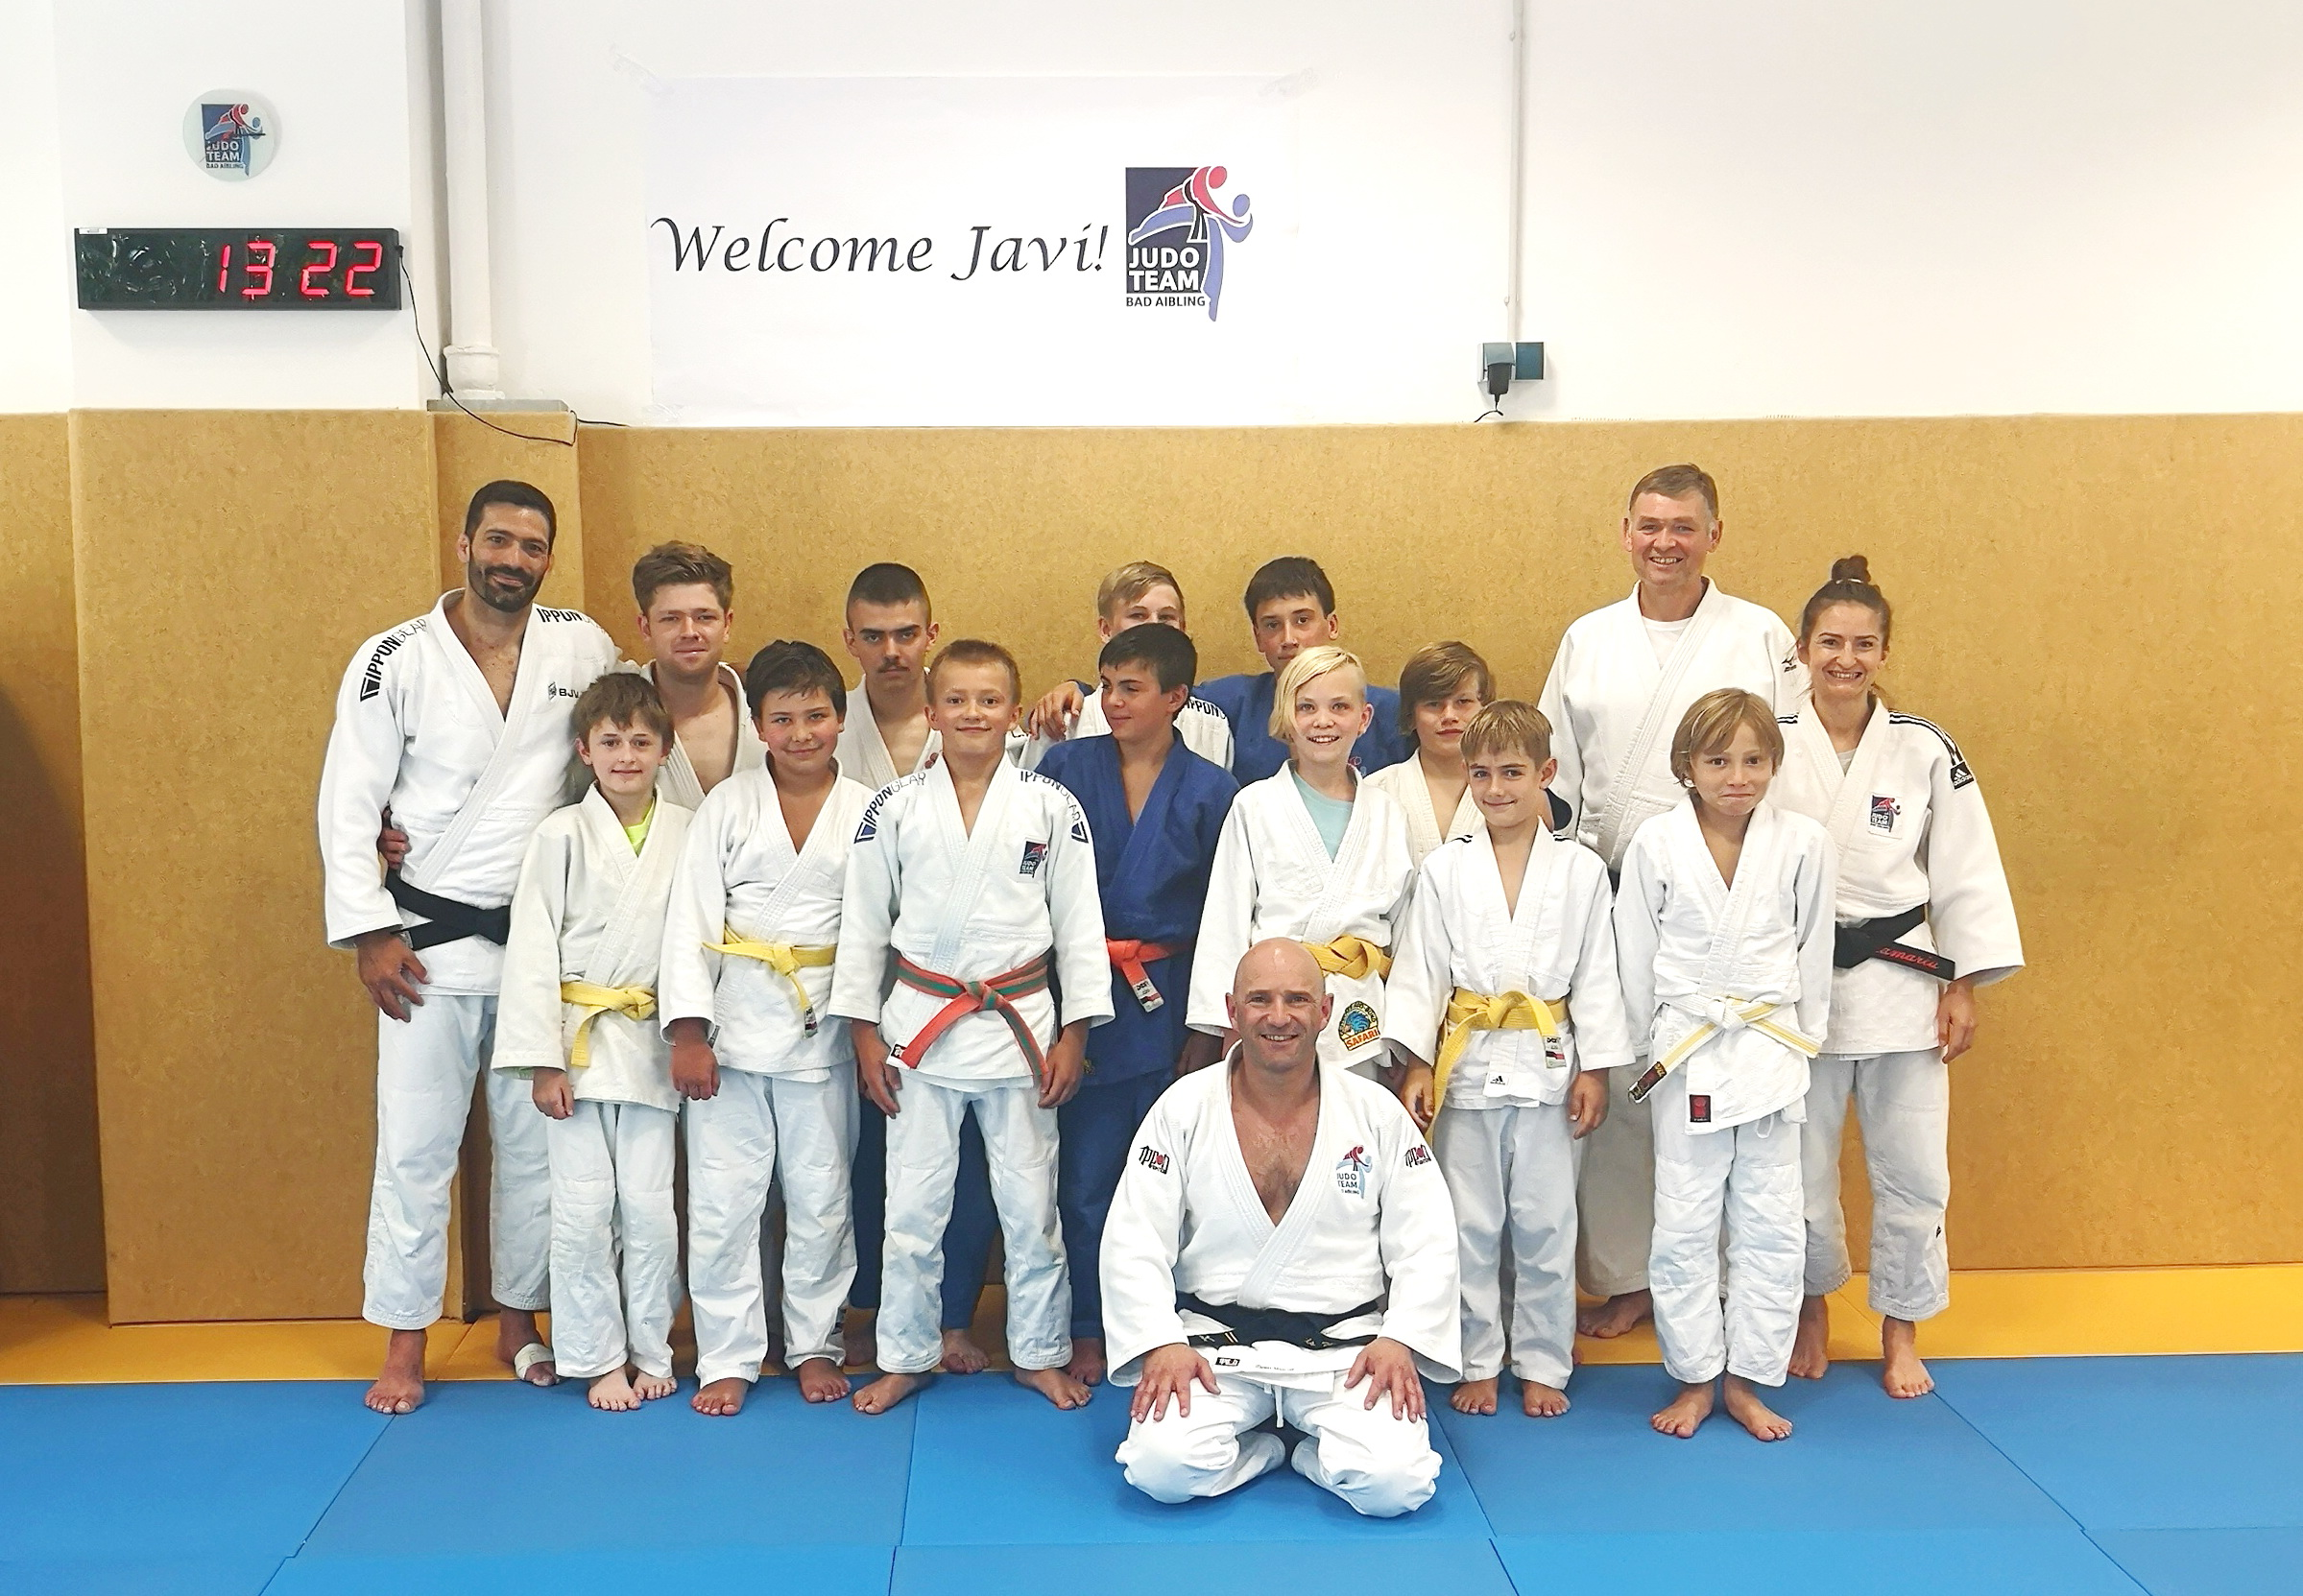 You are currently viewing Back to Judo – Judolehrgang mit Javier Madera in Bad Aibling